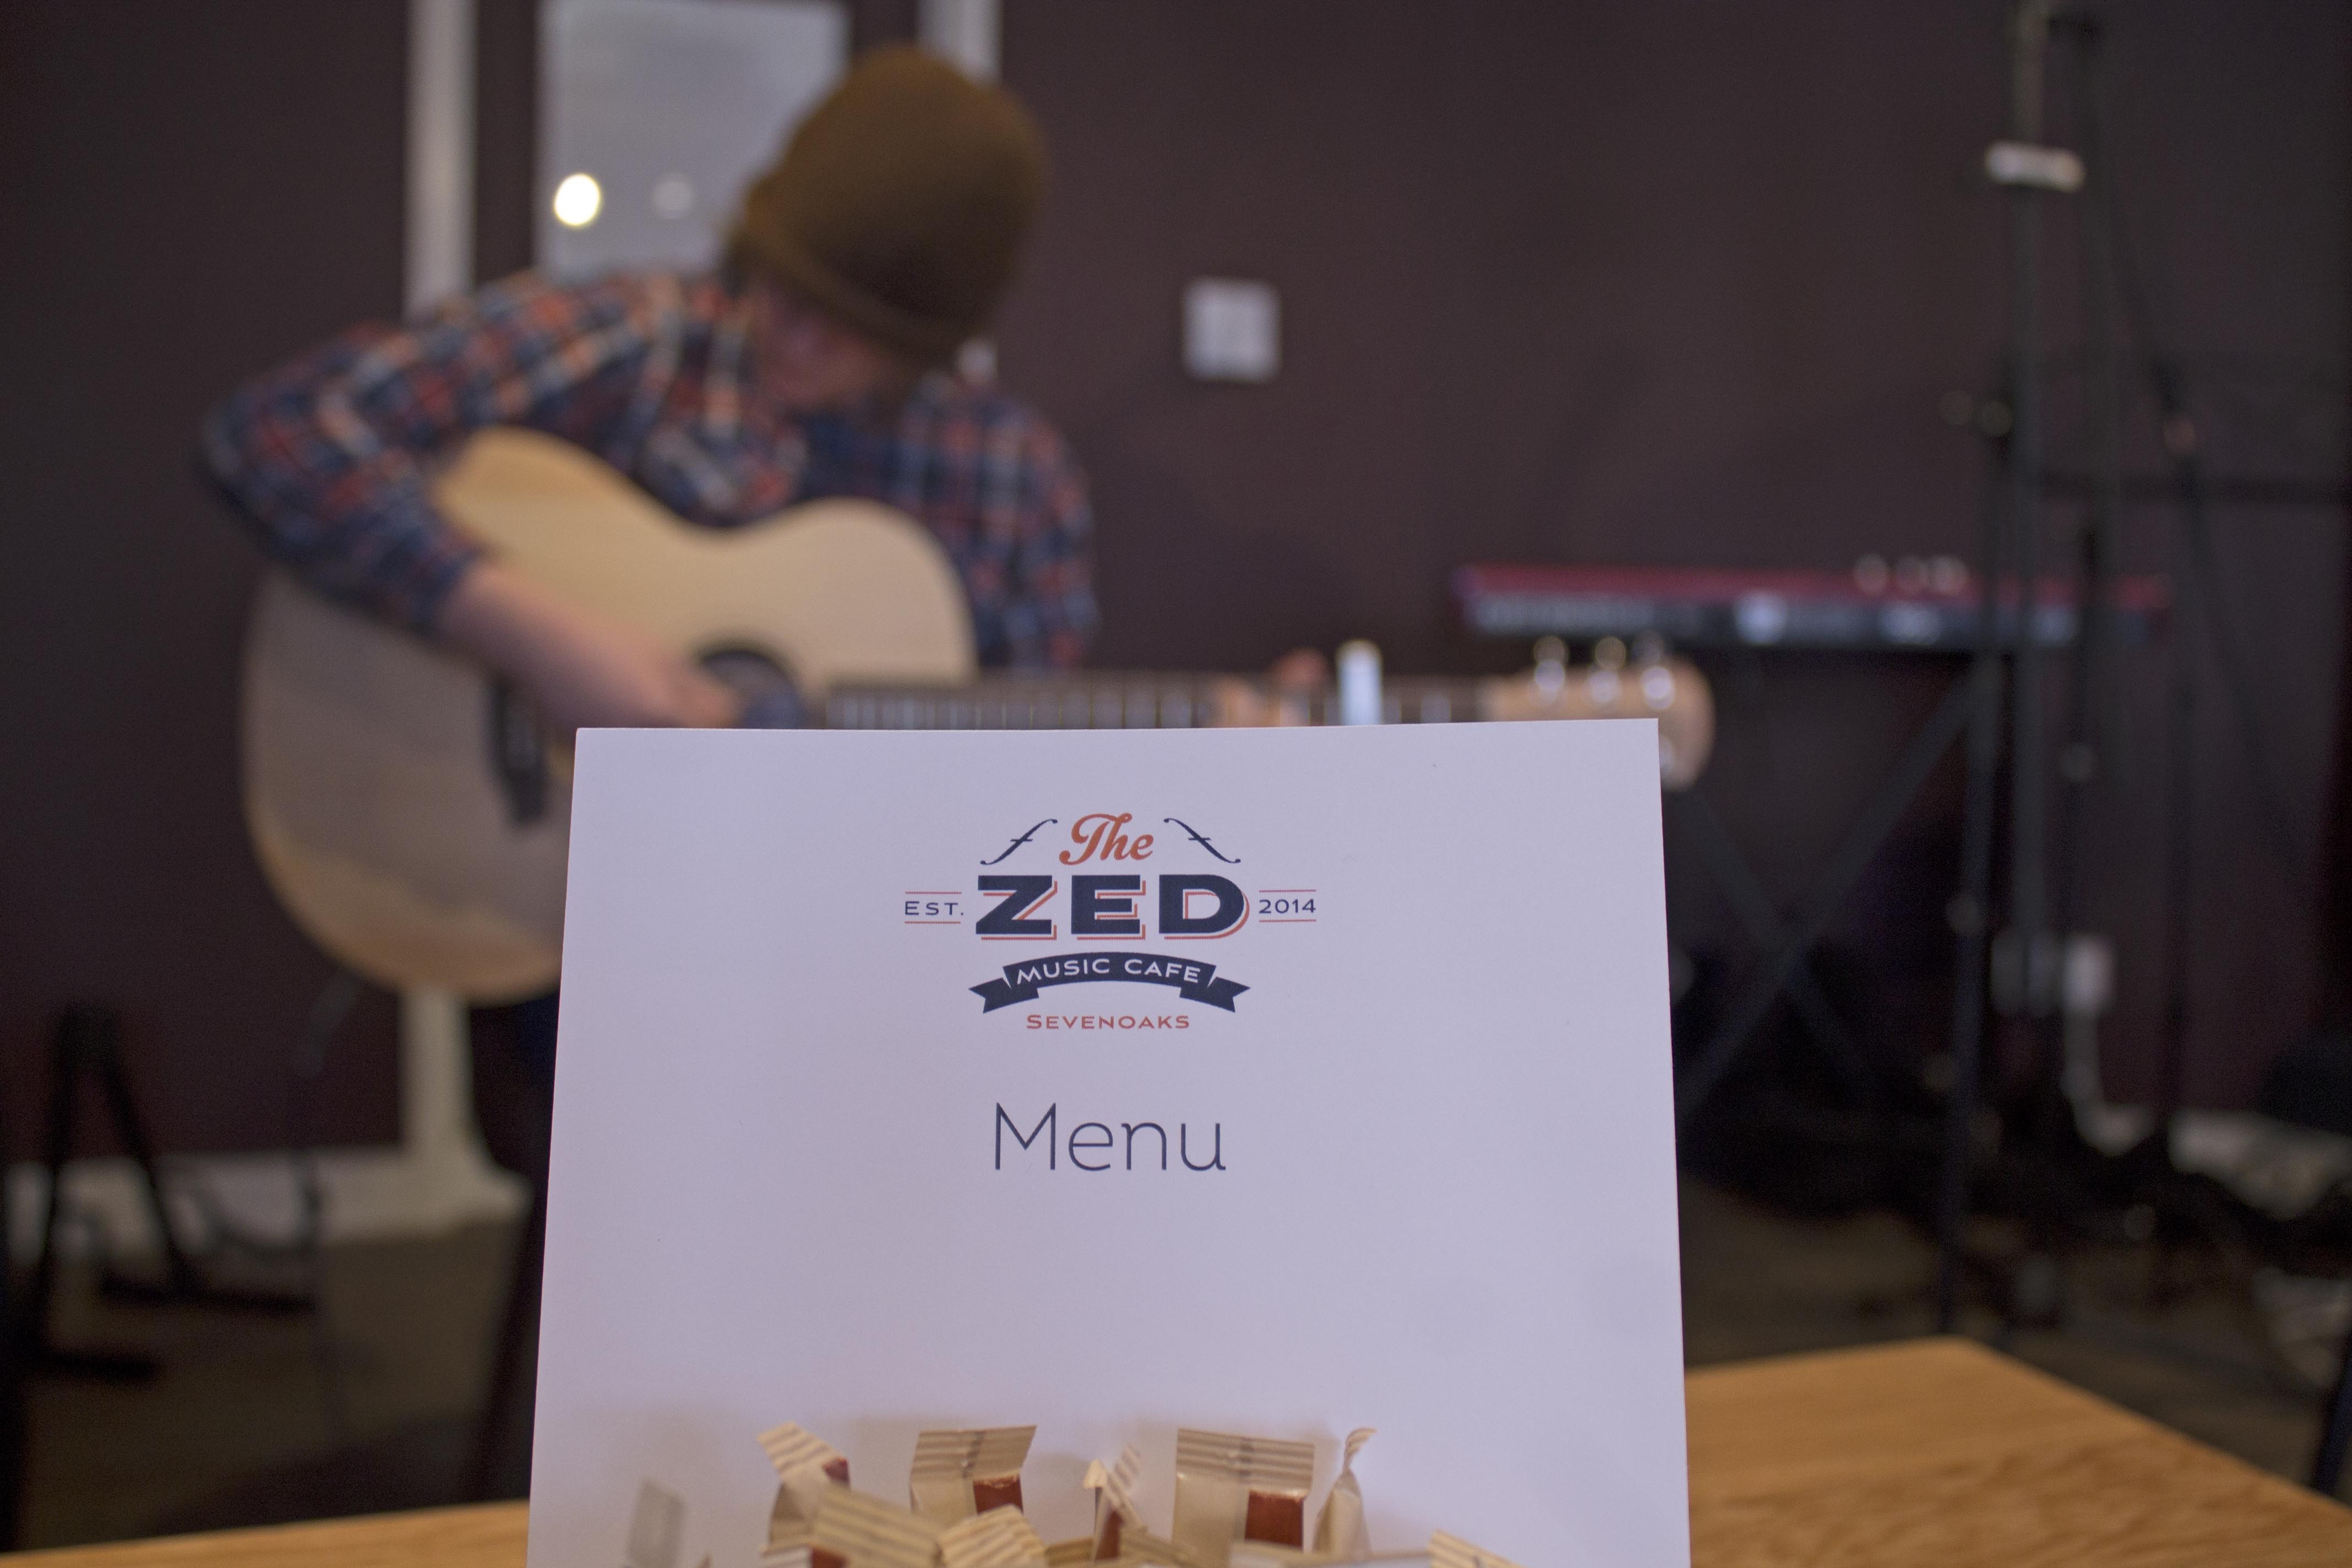 Adam Wedd, Zed Music Cafe Sevenoaks